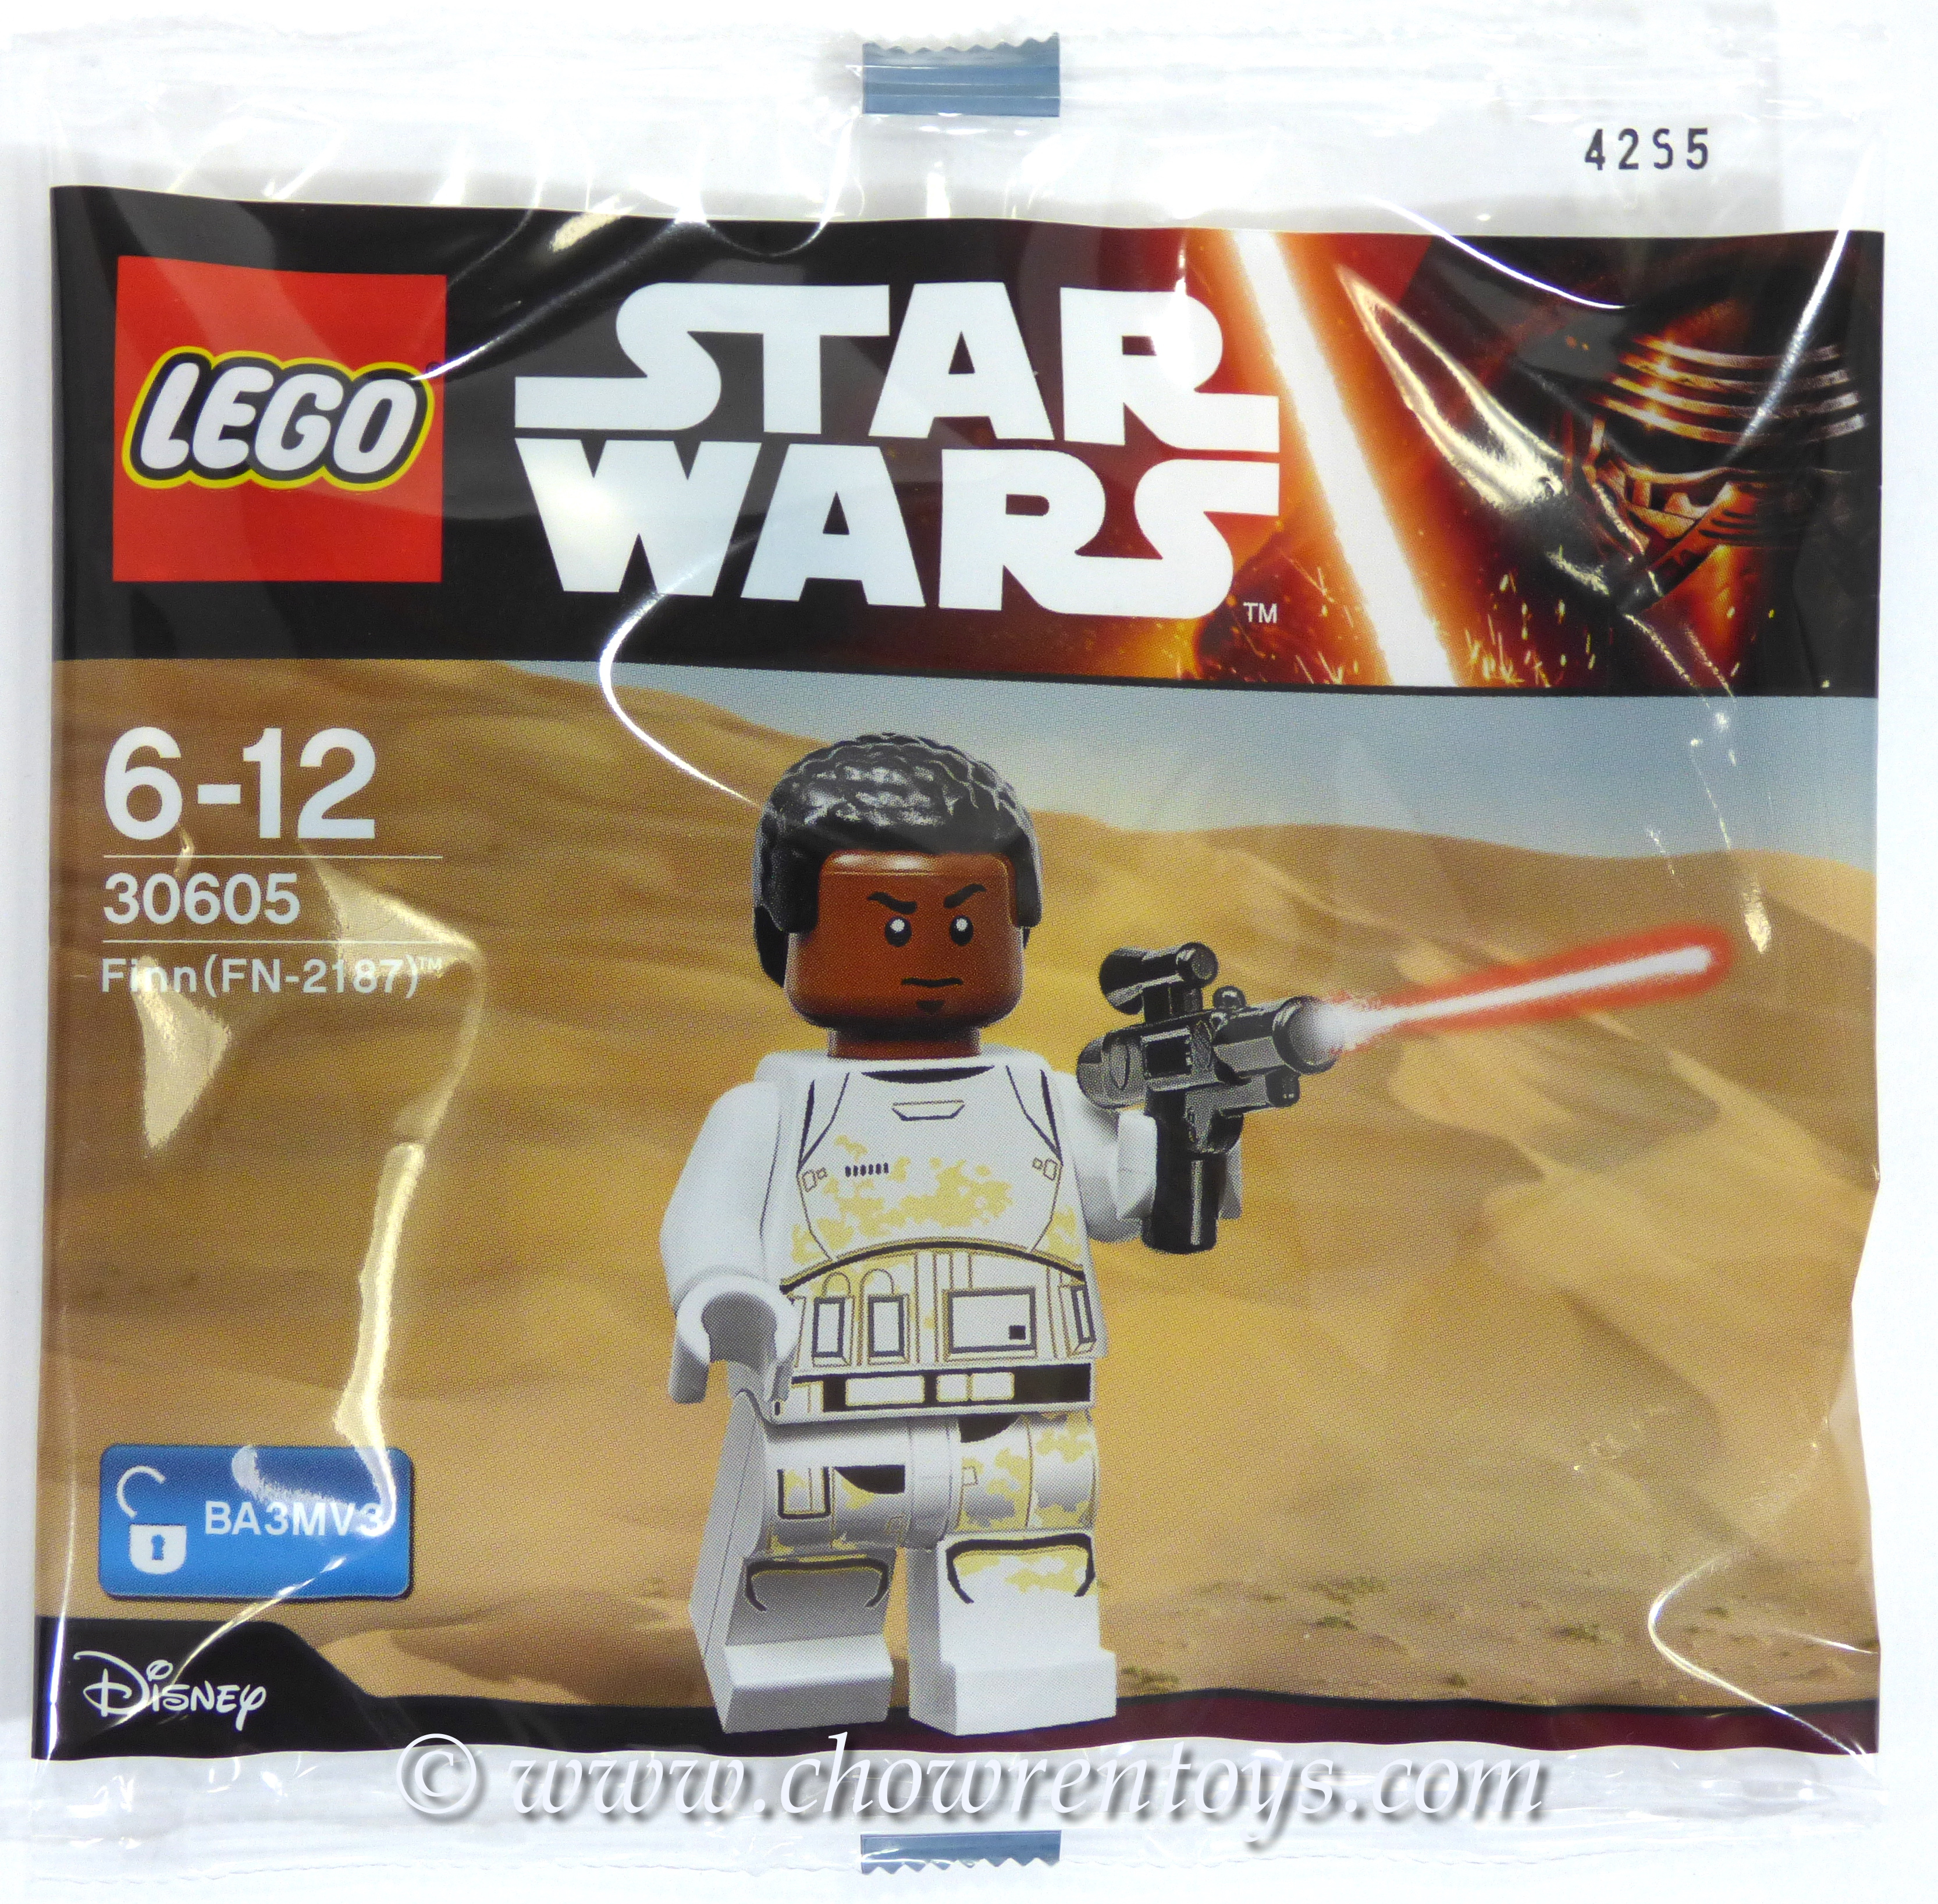 LEGO Star Wars Sets: 30605 Finn (FN-2187) NEW